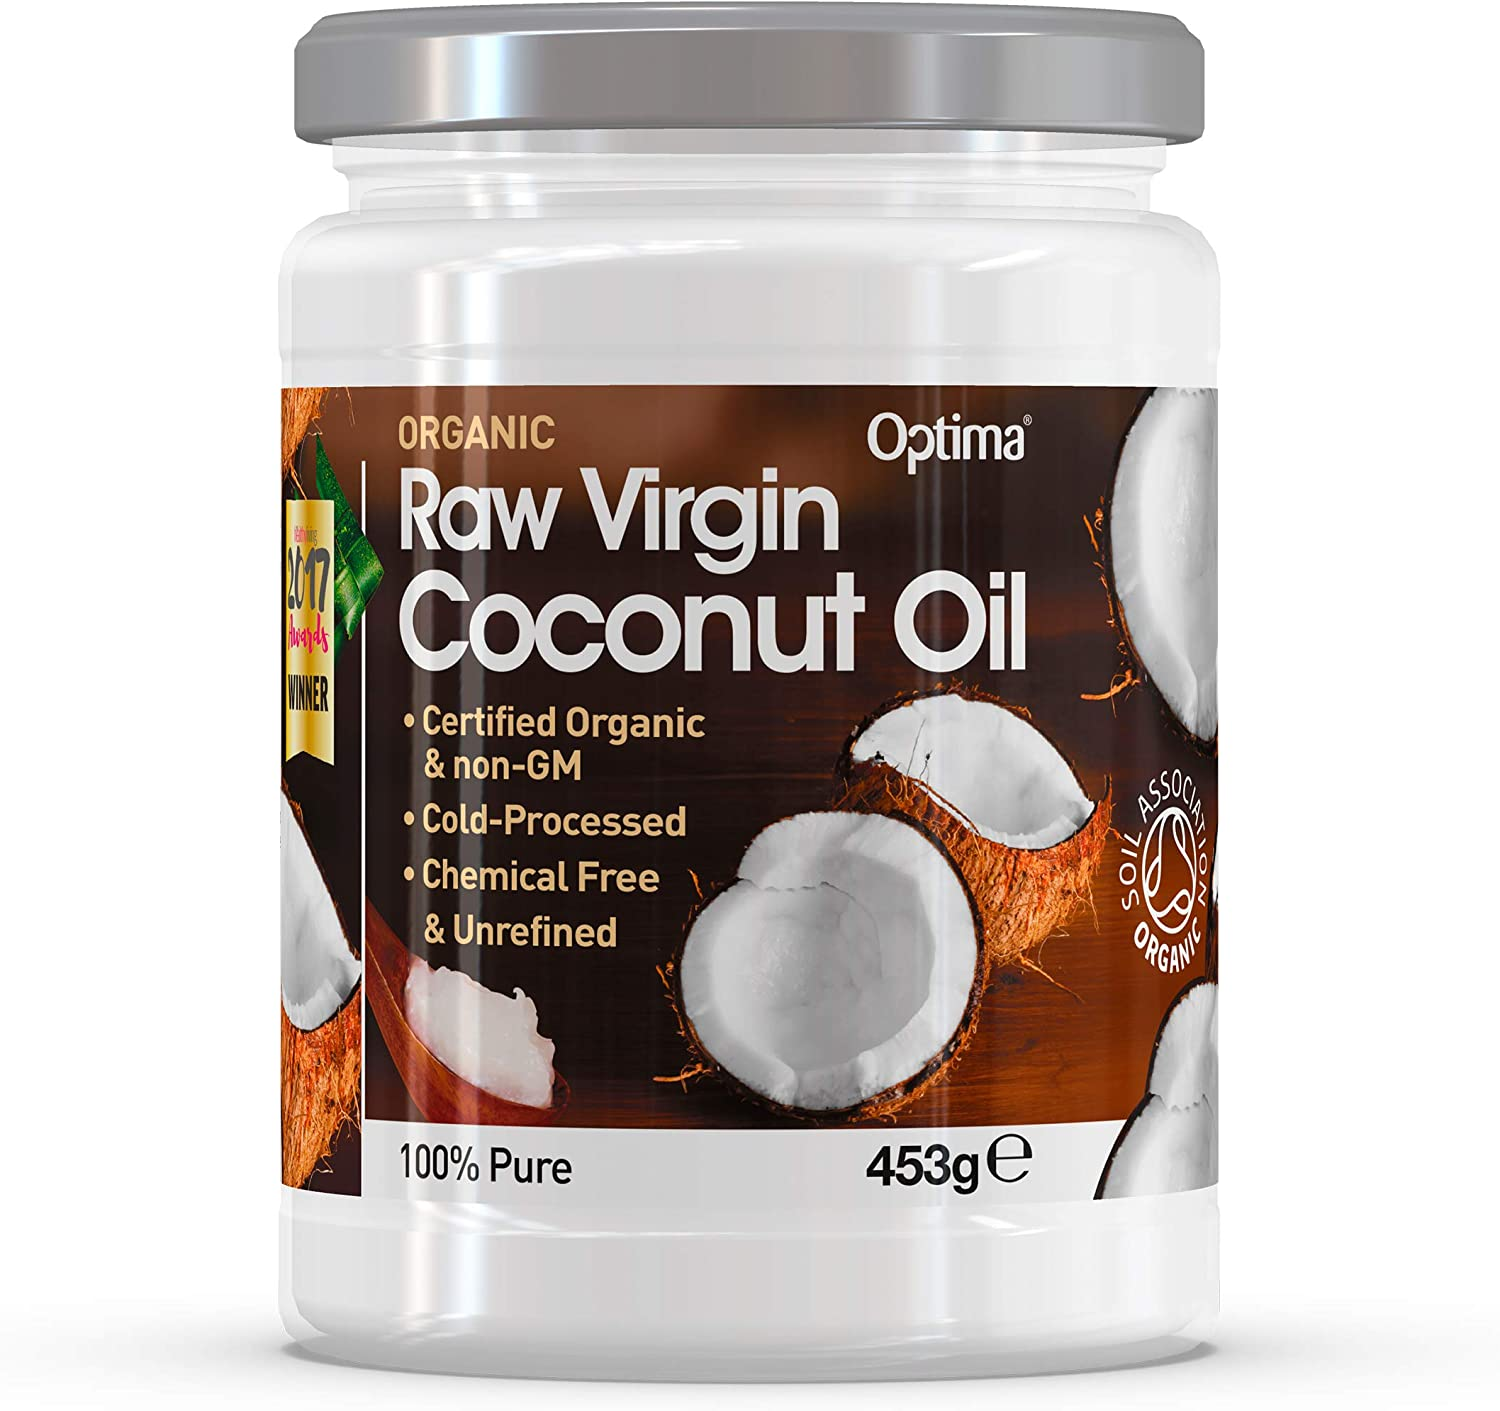 Optima Organic Coconut Oil 453g